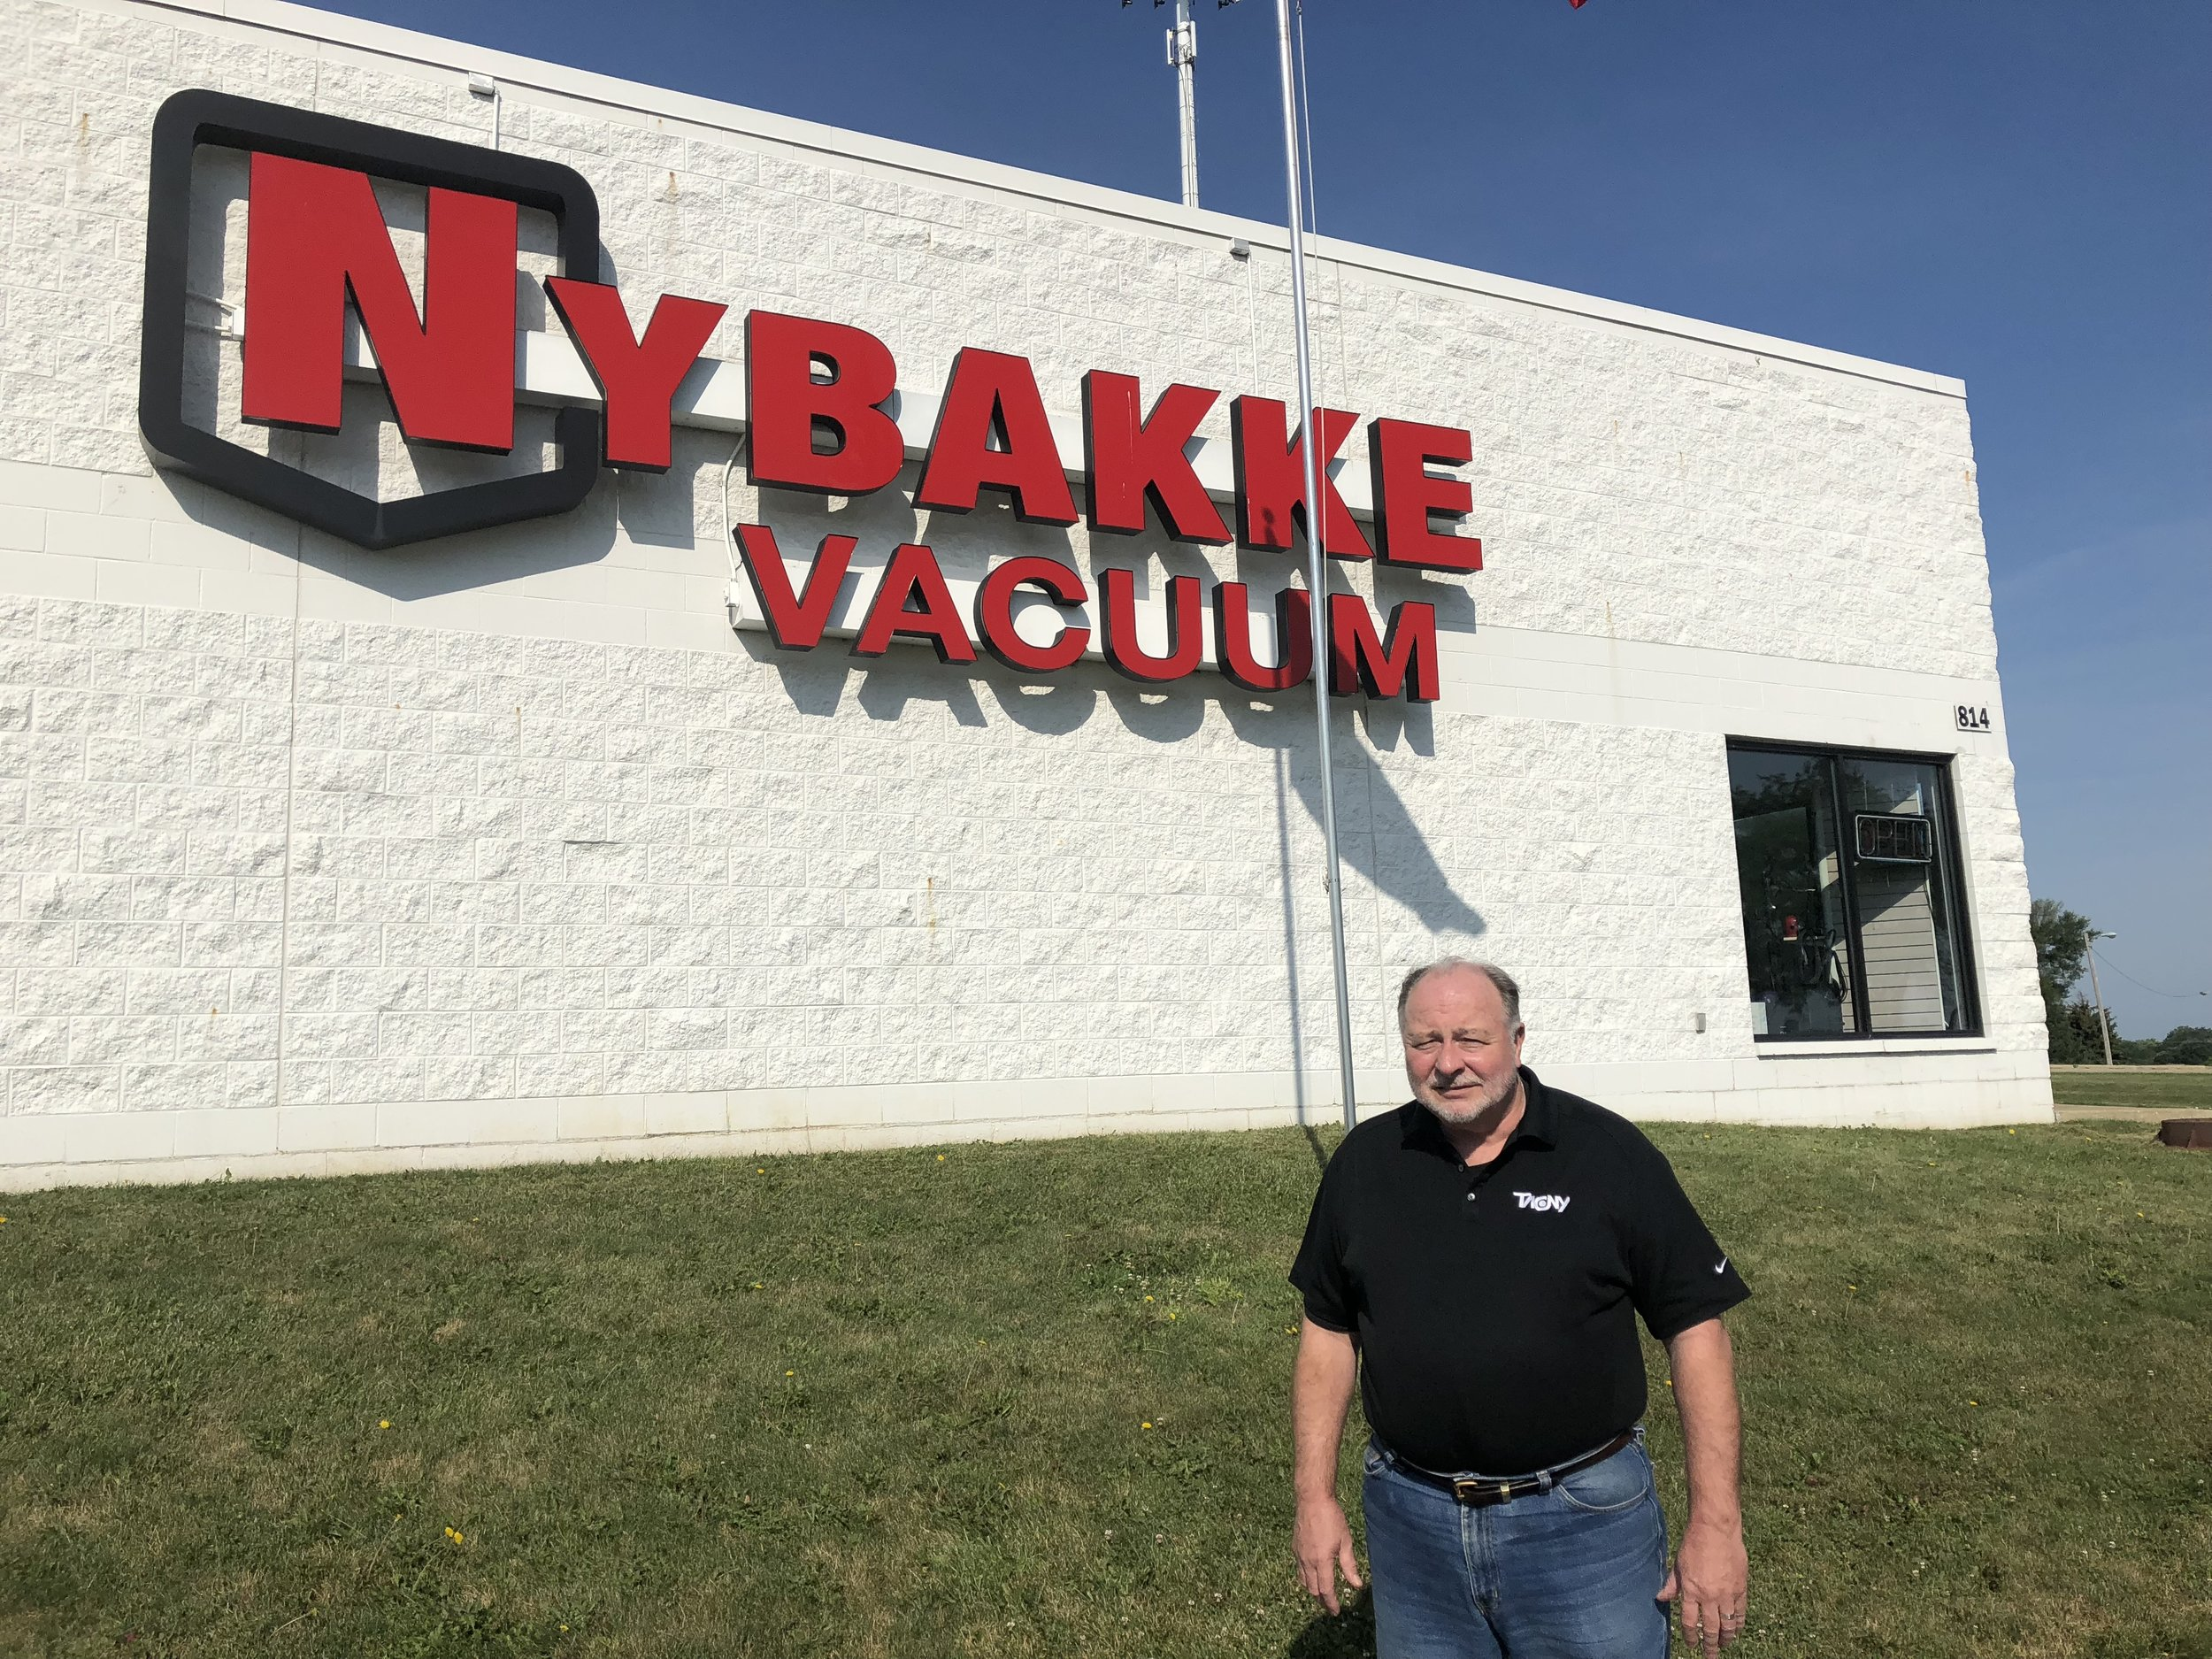 Terry Nybakke of Nybakke Vacuum Shop in Bloomington, IL (Photo: Erik Prenzler)